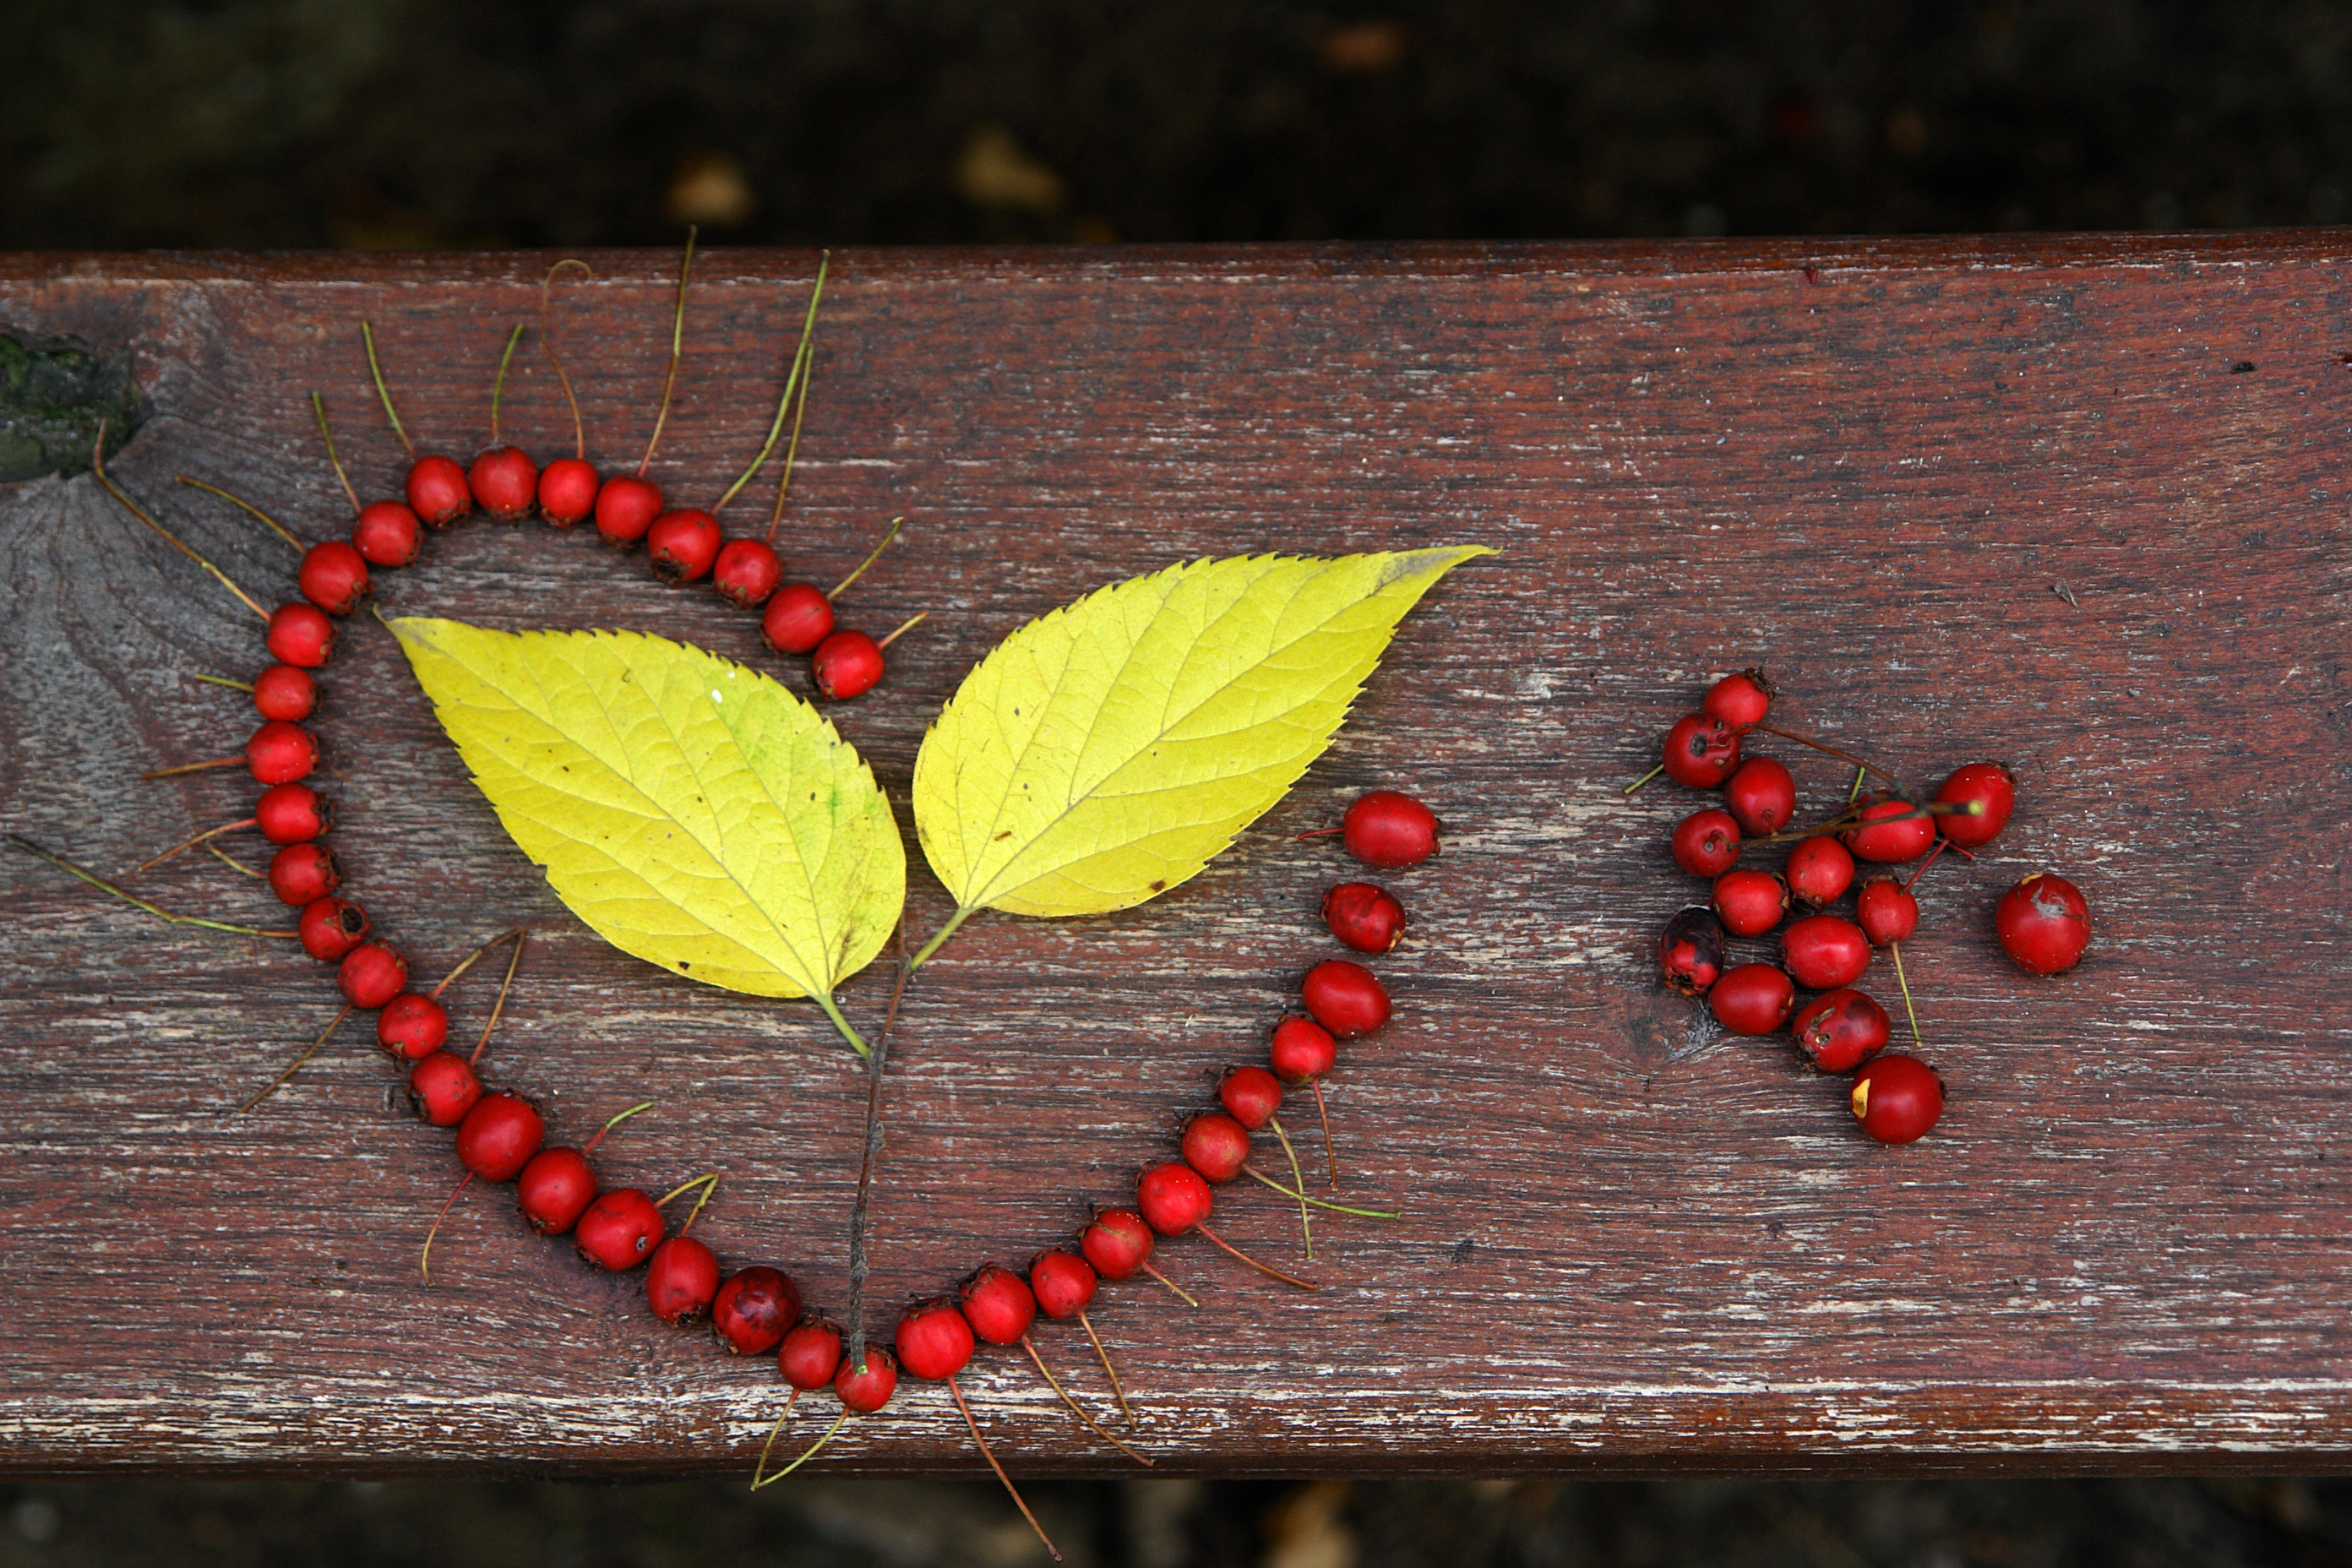 Autumn composition, Abstract, Autumn, Bench, Berry, HQ Photo